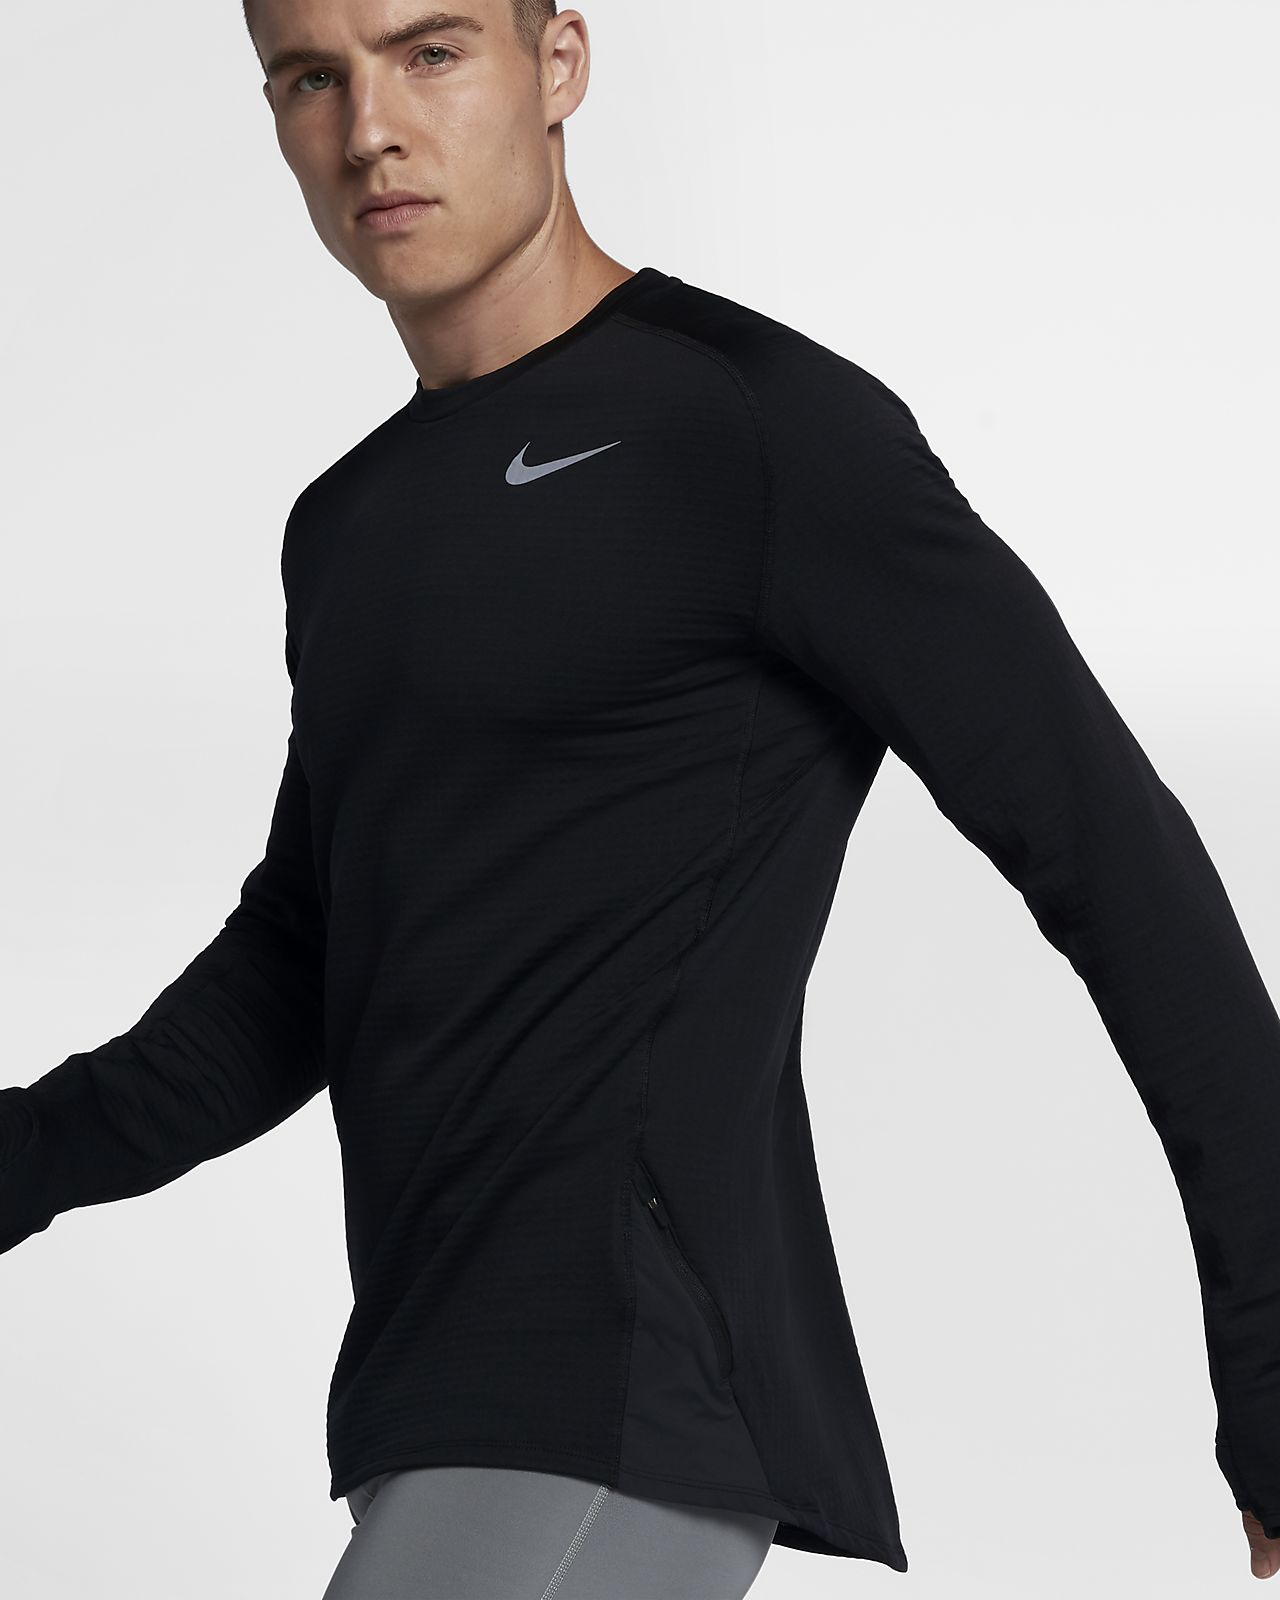 Nike Therma Sphere langermet løpetopp for herre